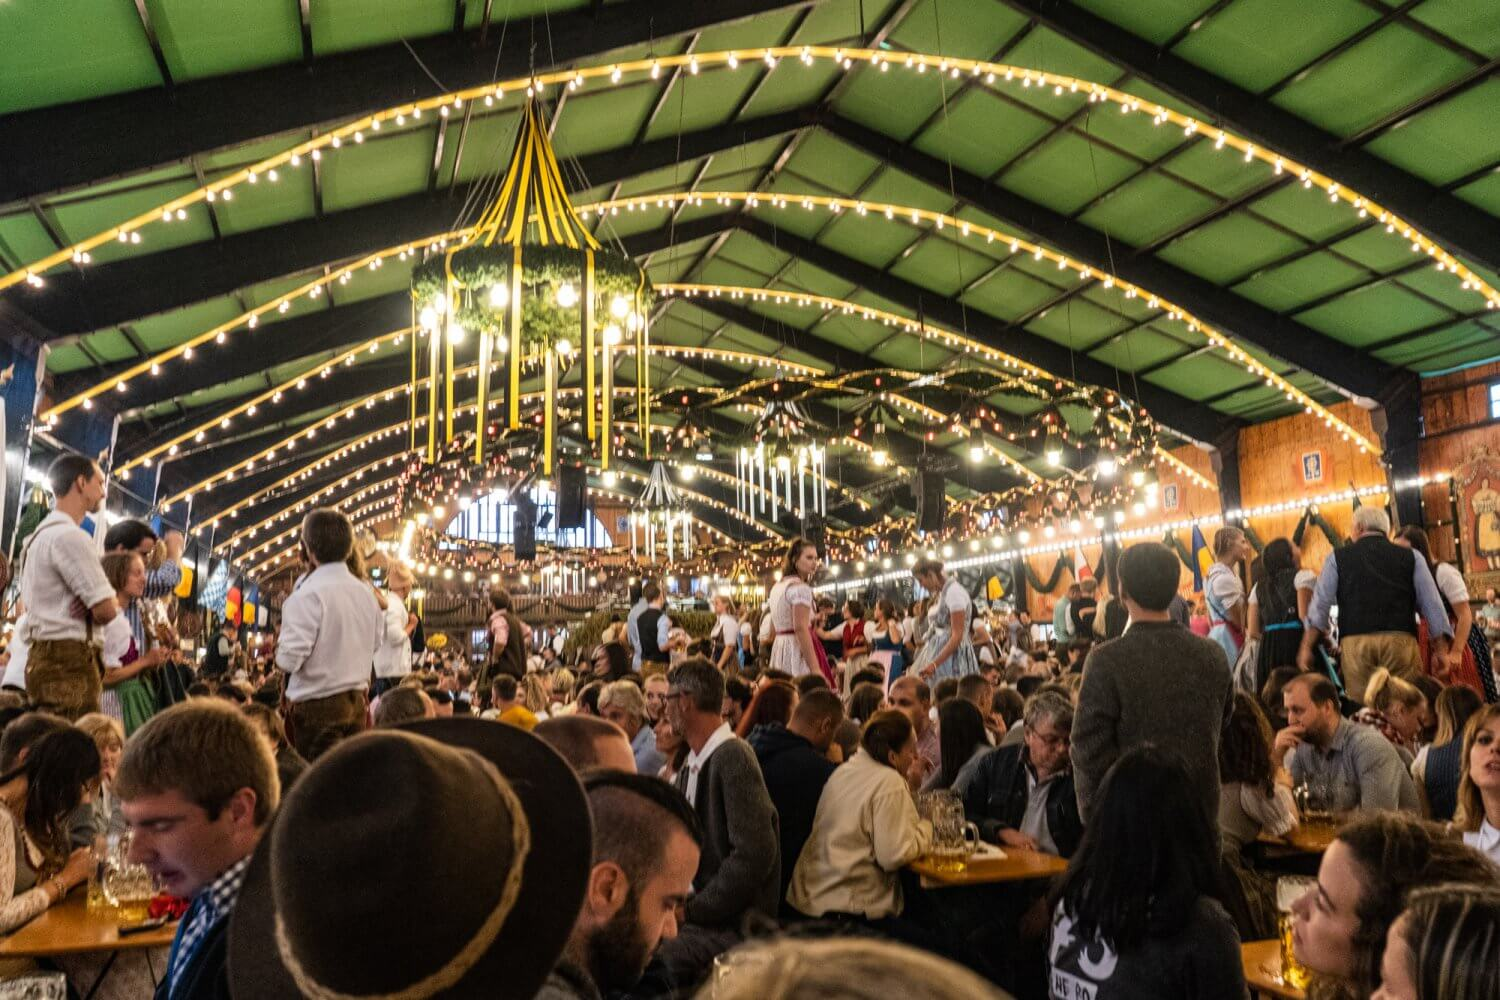 Augustiner tent at Oktoberfest in Munich, Germany